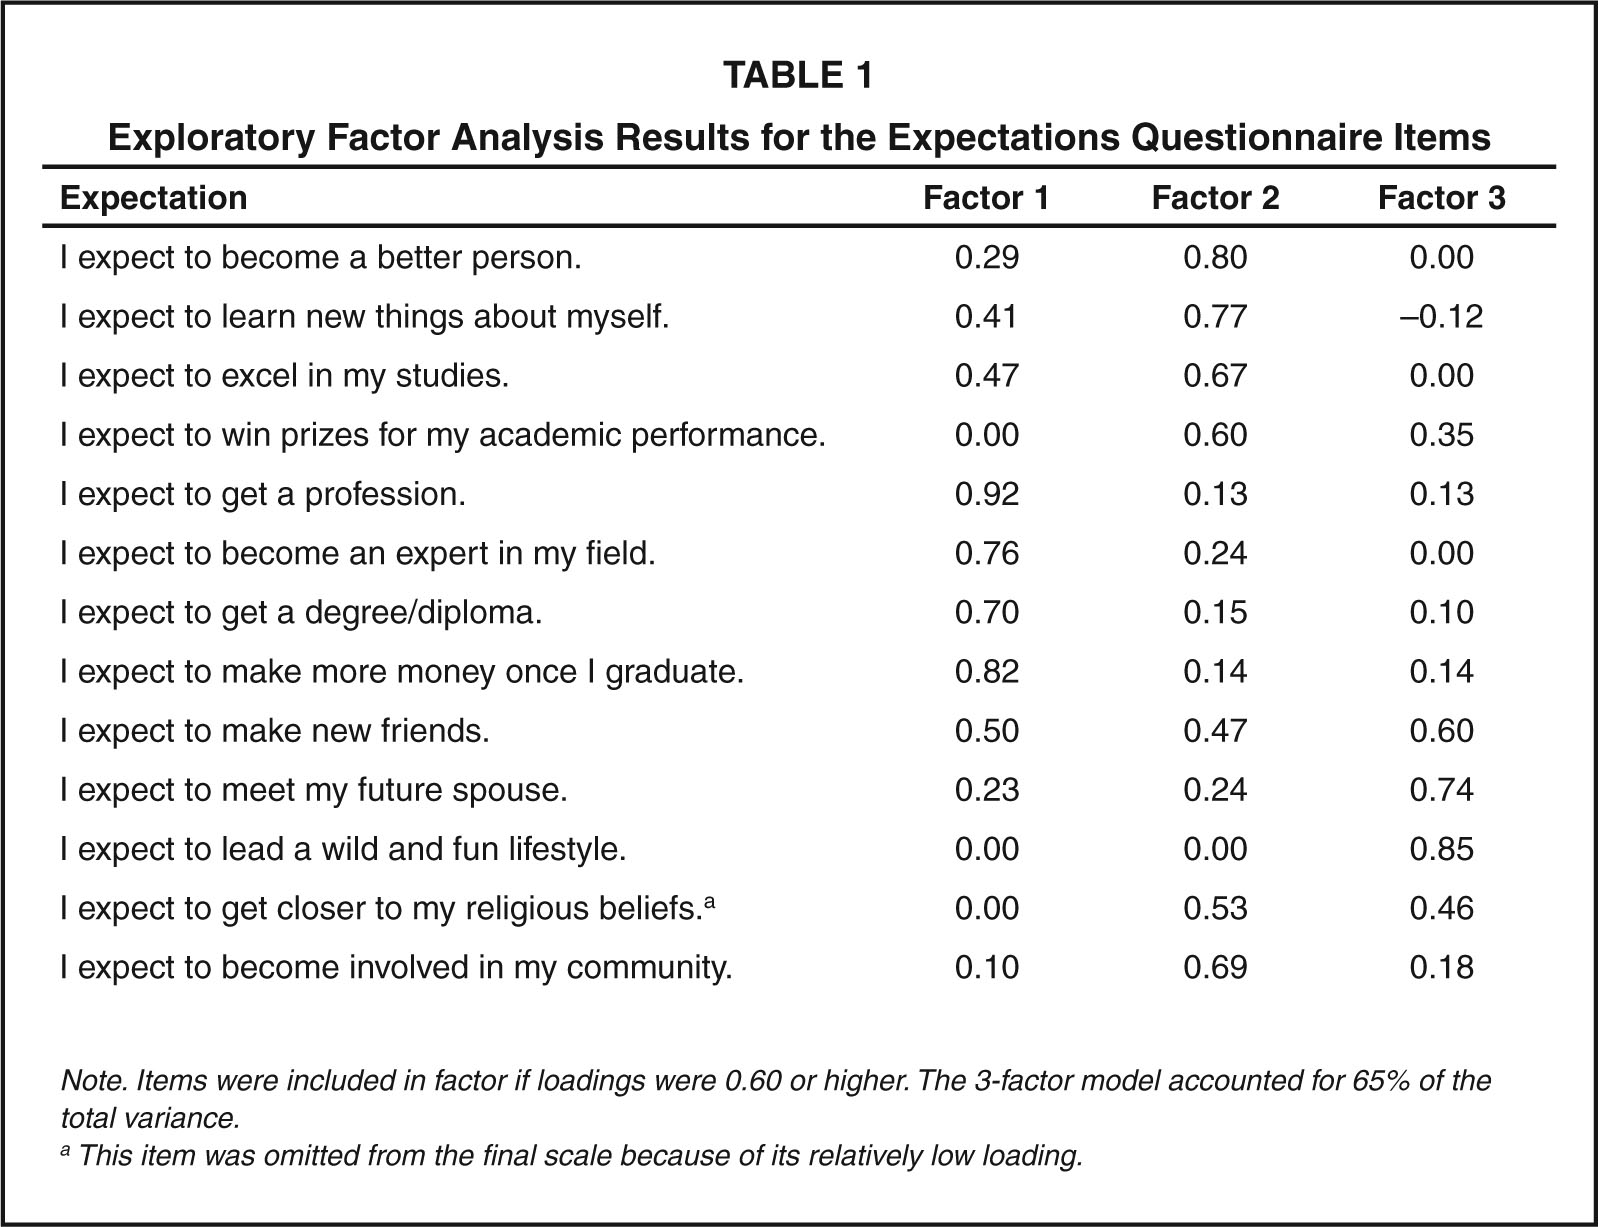 Exploratory Factor Analysis Results for the Expectations Questionnaire Items